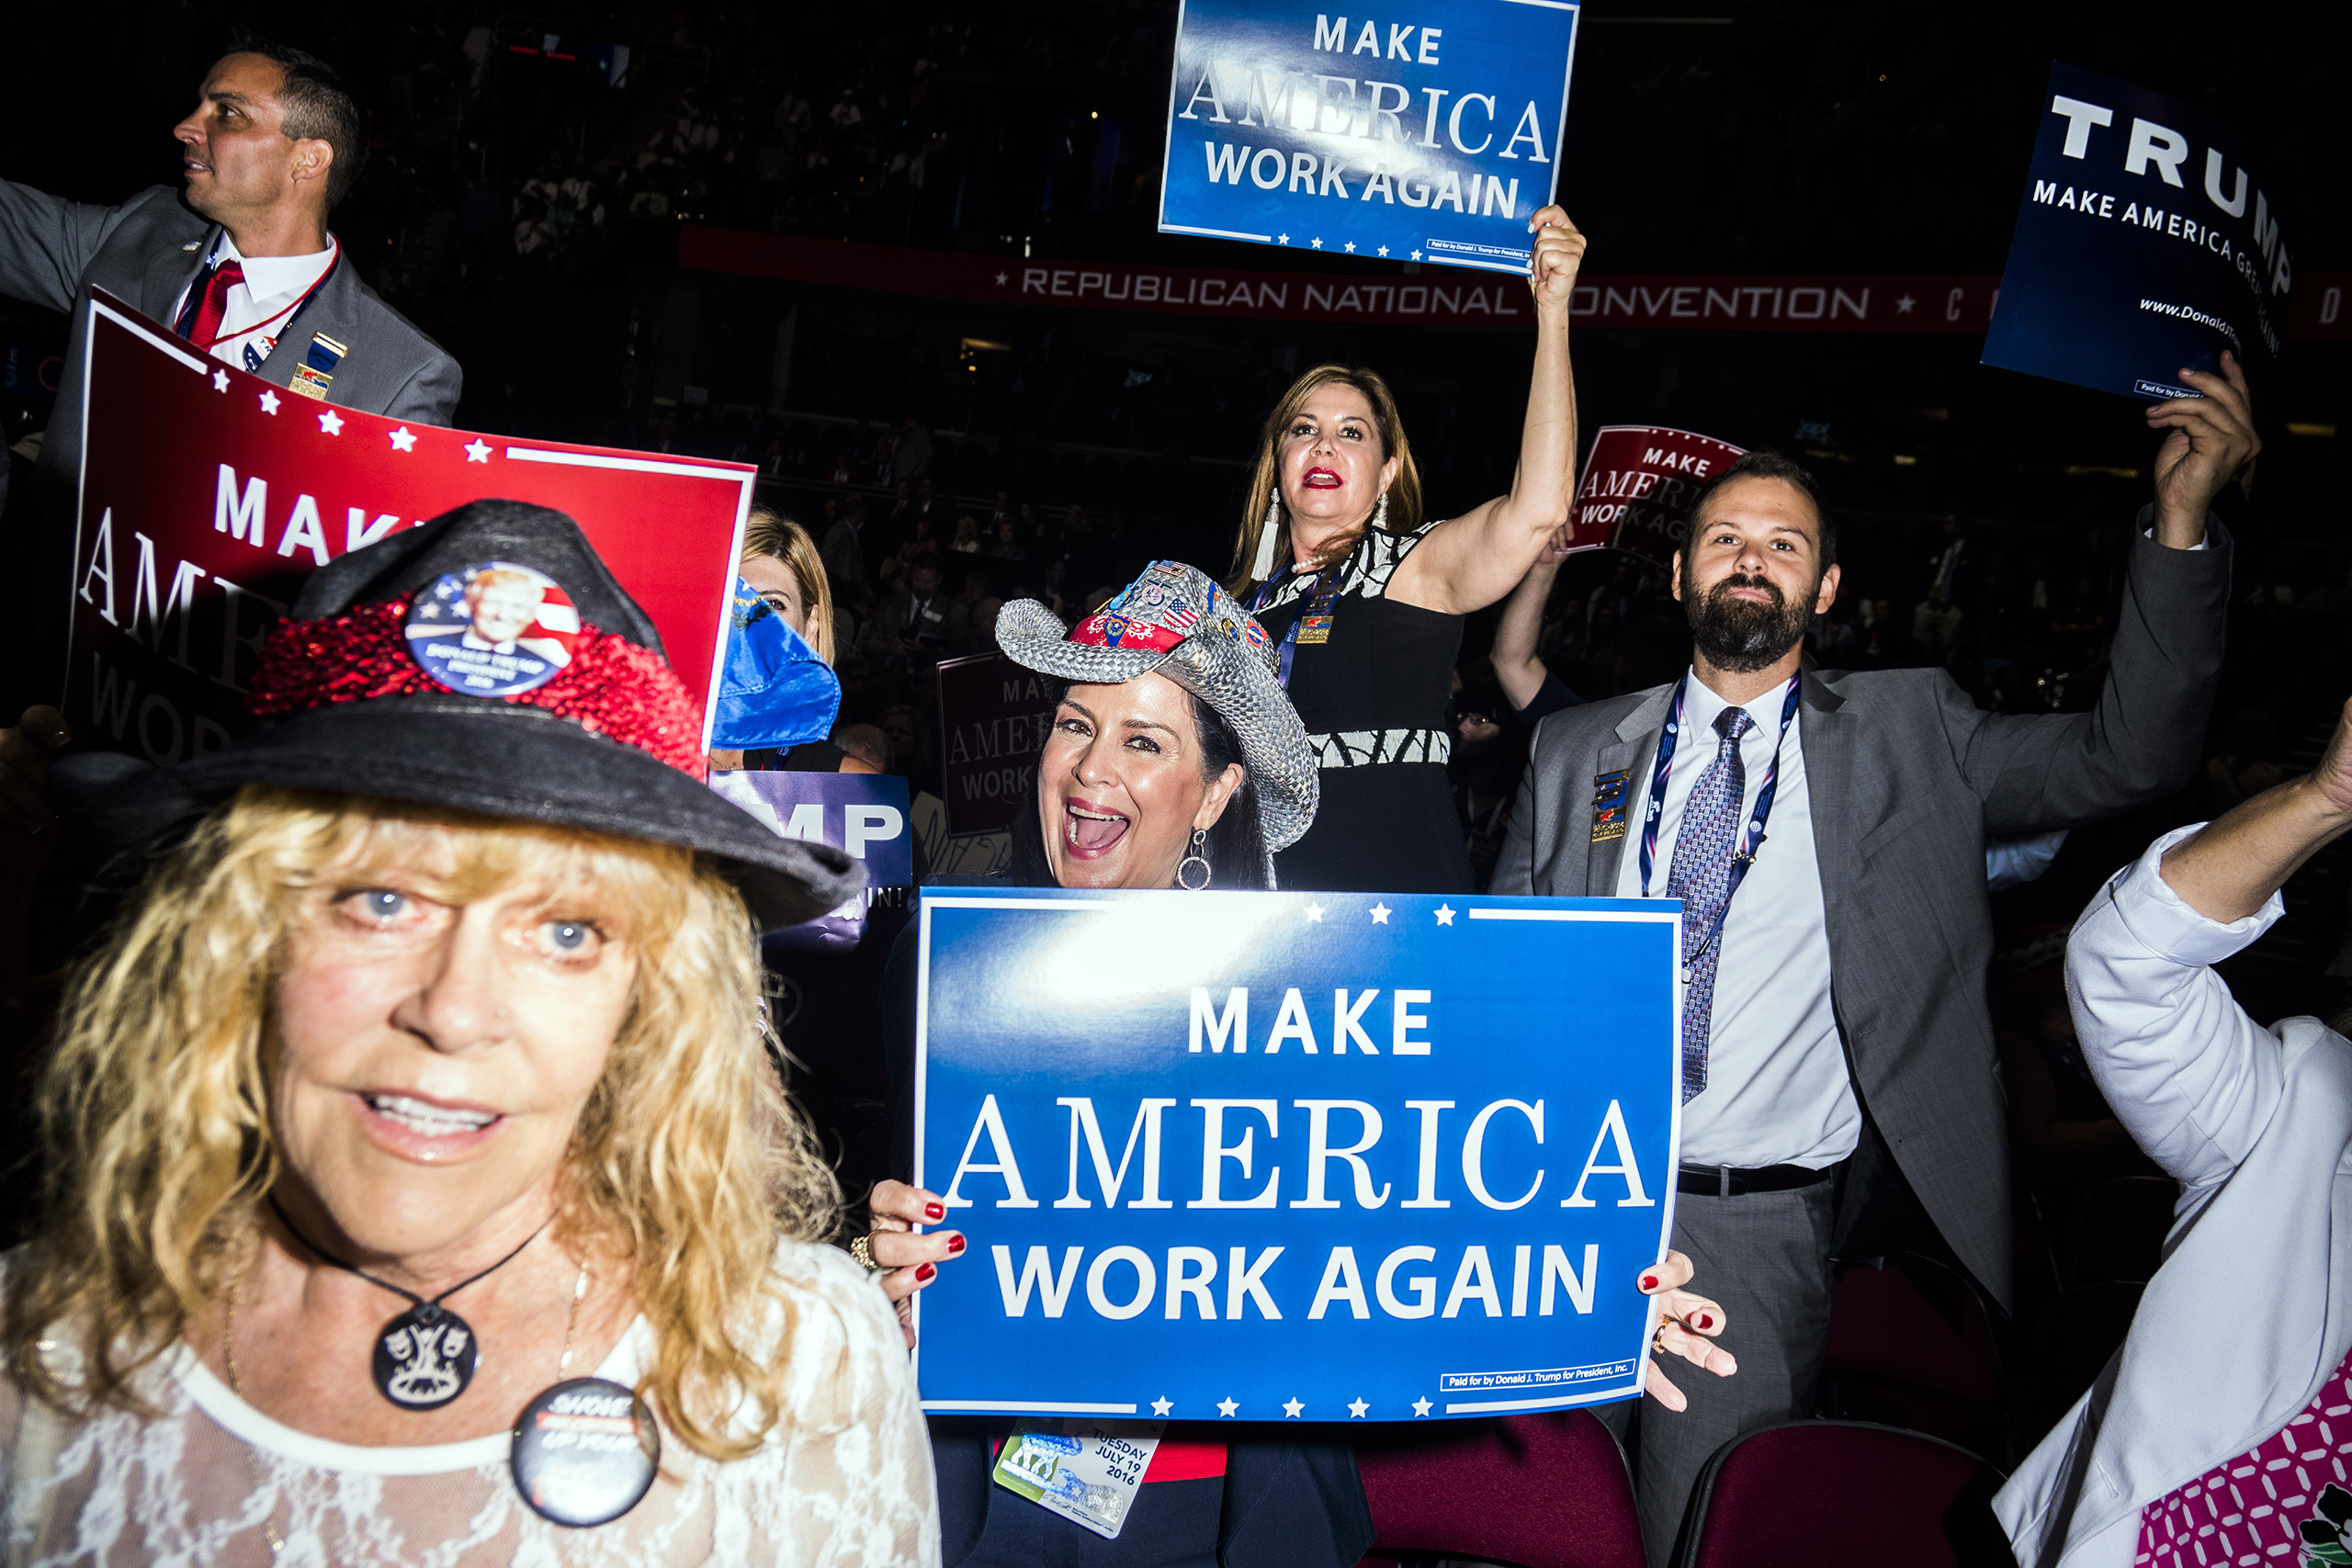 Supporters of Donald Trump at the Republican National Convention on July 19, 2016, at the Quicken Loans Arena in Cleveland, Ohio.